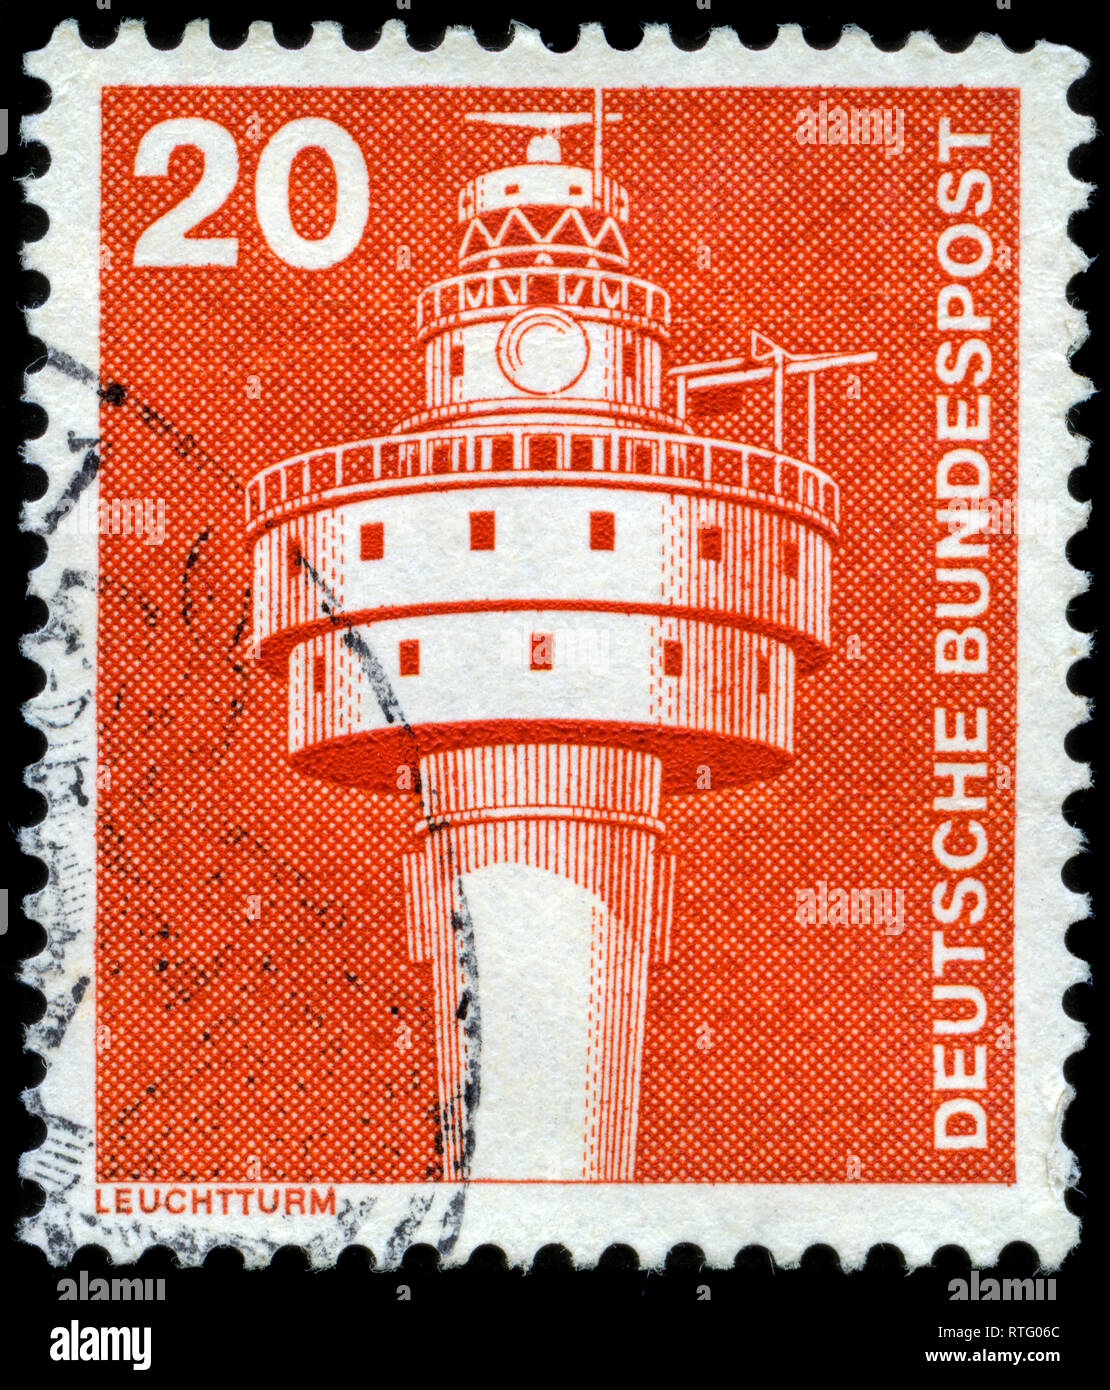 Postage stamp from the Federal Republic of Germany in the Industry and Technology Definitives 1975-1982 series issued in 1976 - Stock Image